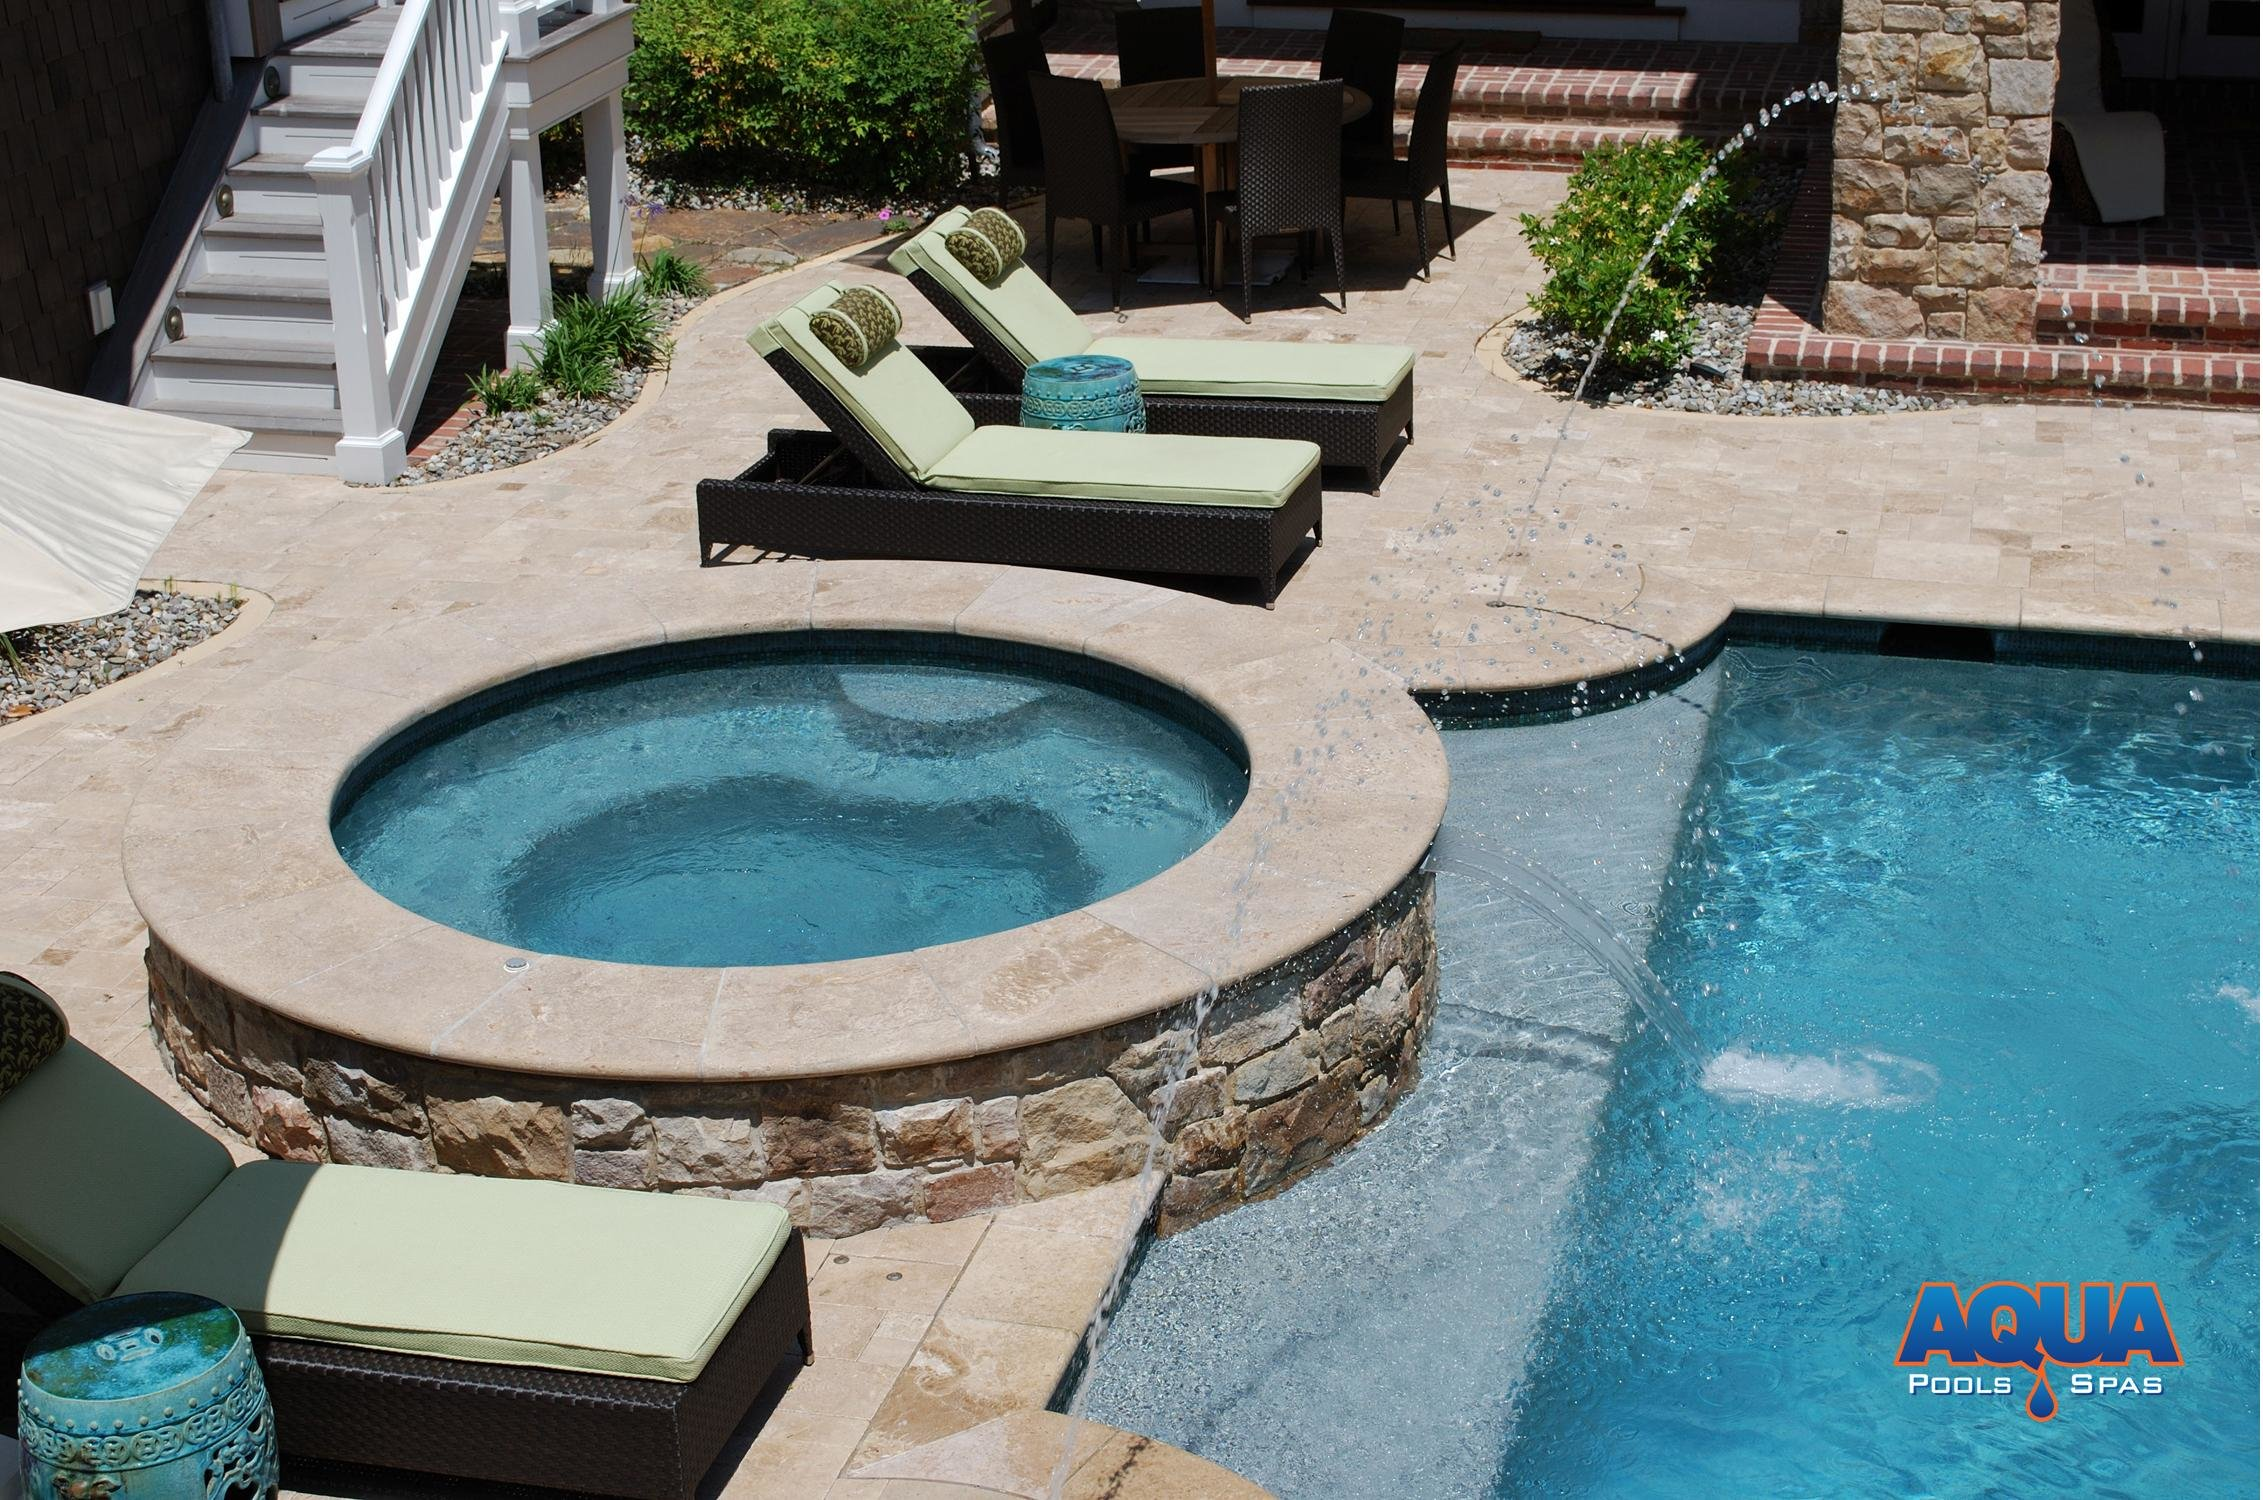 Jacuzzi In The Pool Custom Spas Custom Gunite Hot Tubs Aqua Pools And Spas